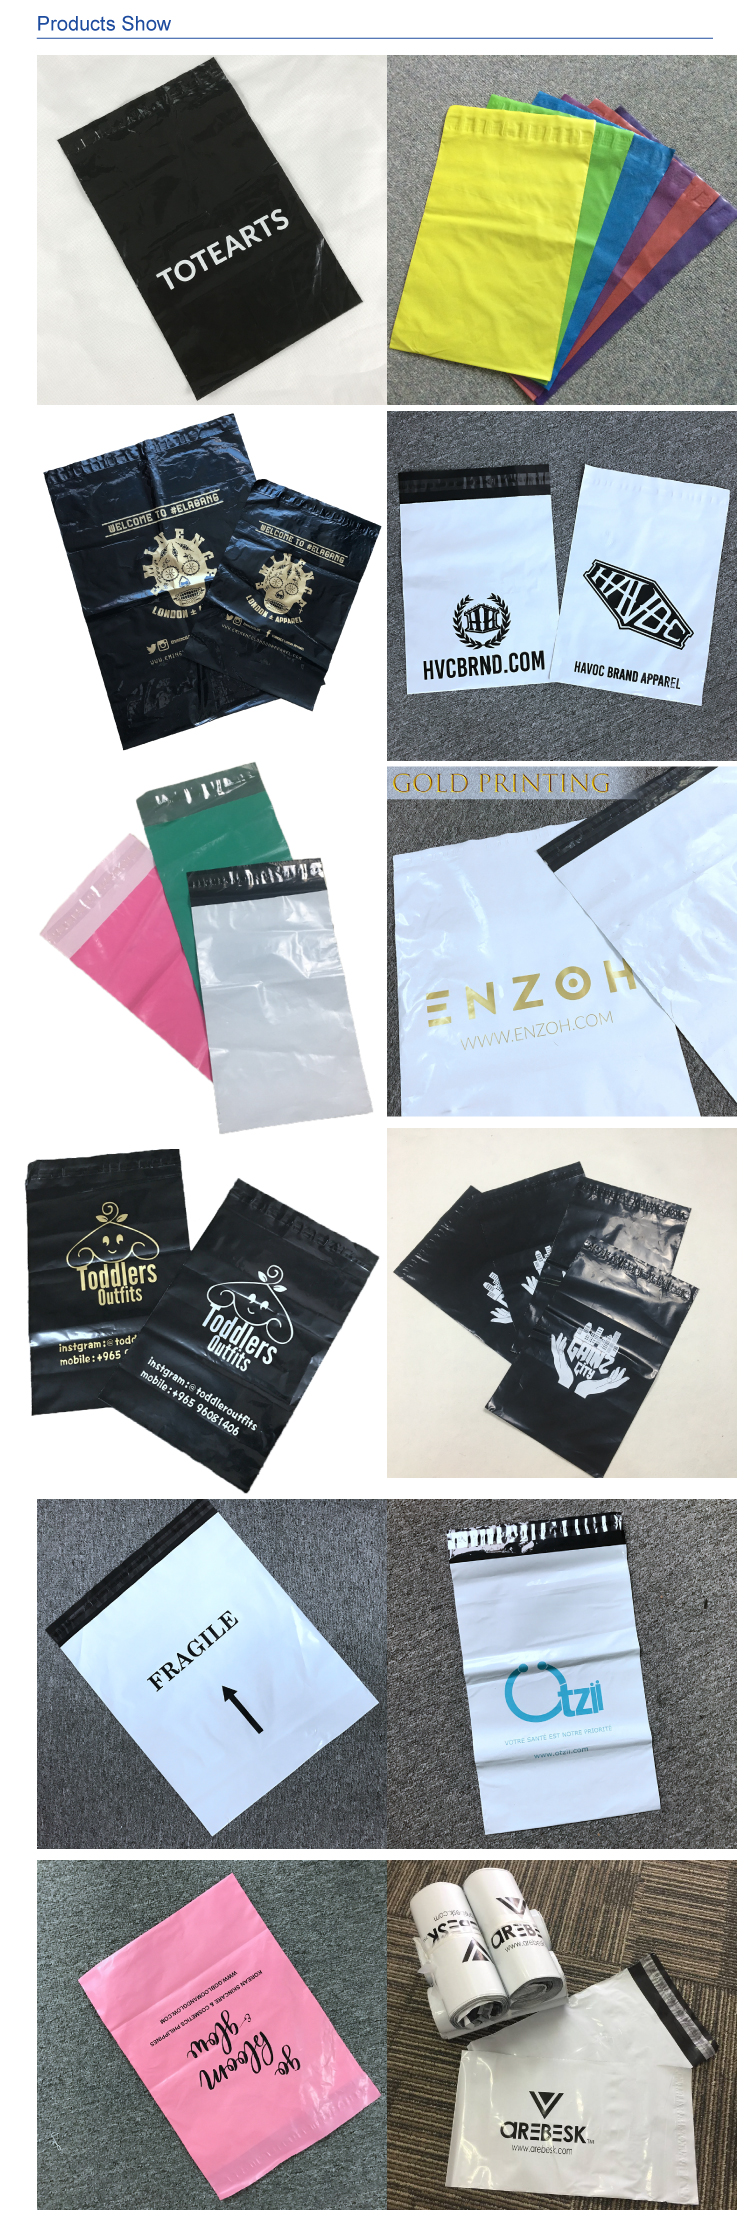 Design Logo Colored Printed 10X13 Compostable Biodegradable Poly Mailers Shipping Envelopes Bags